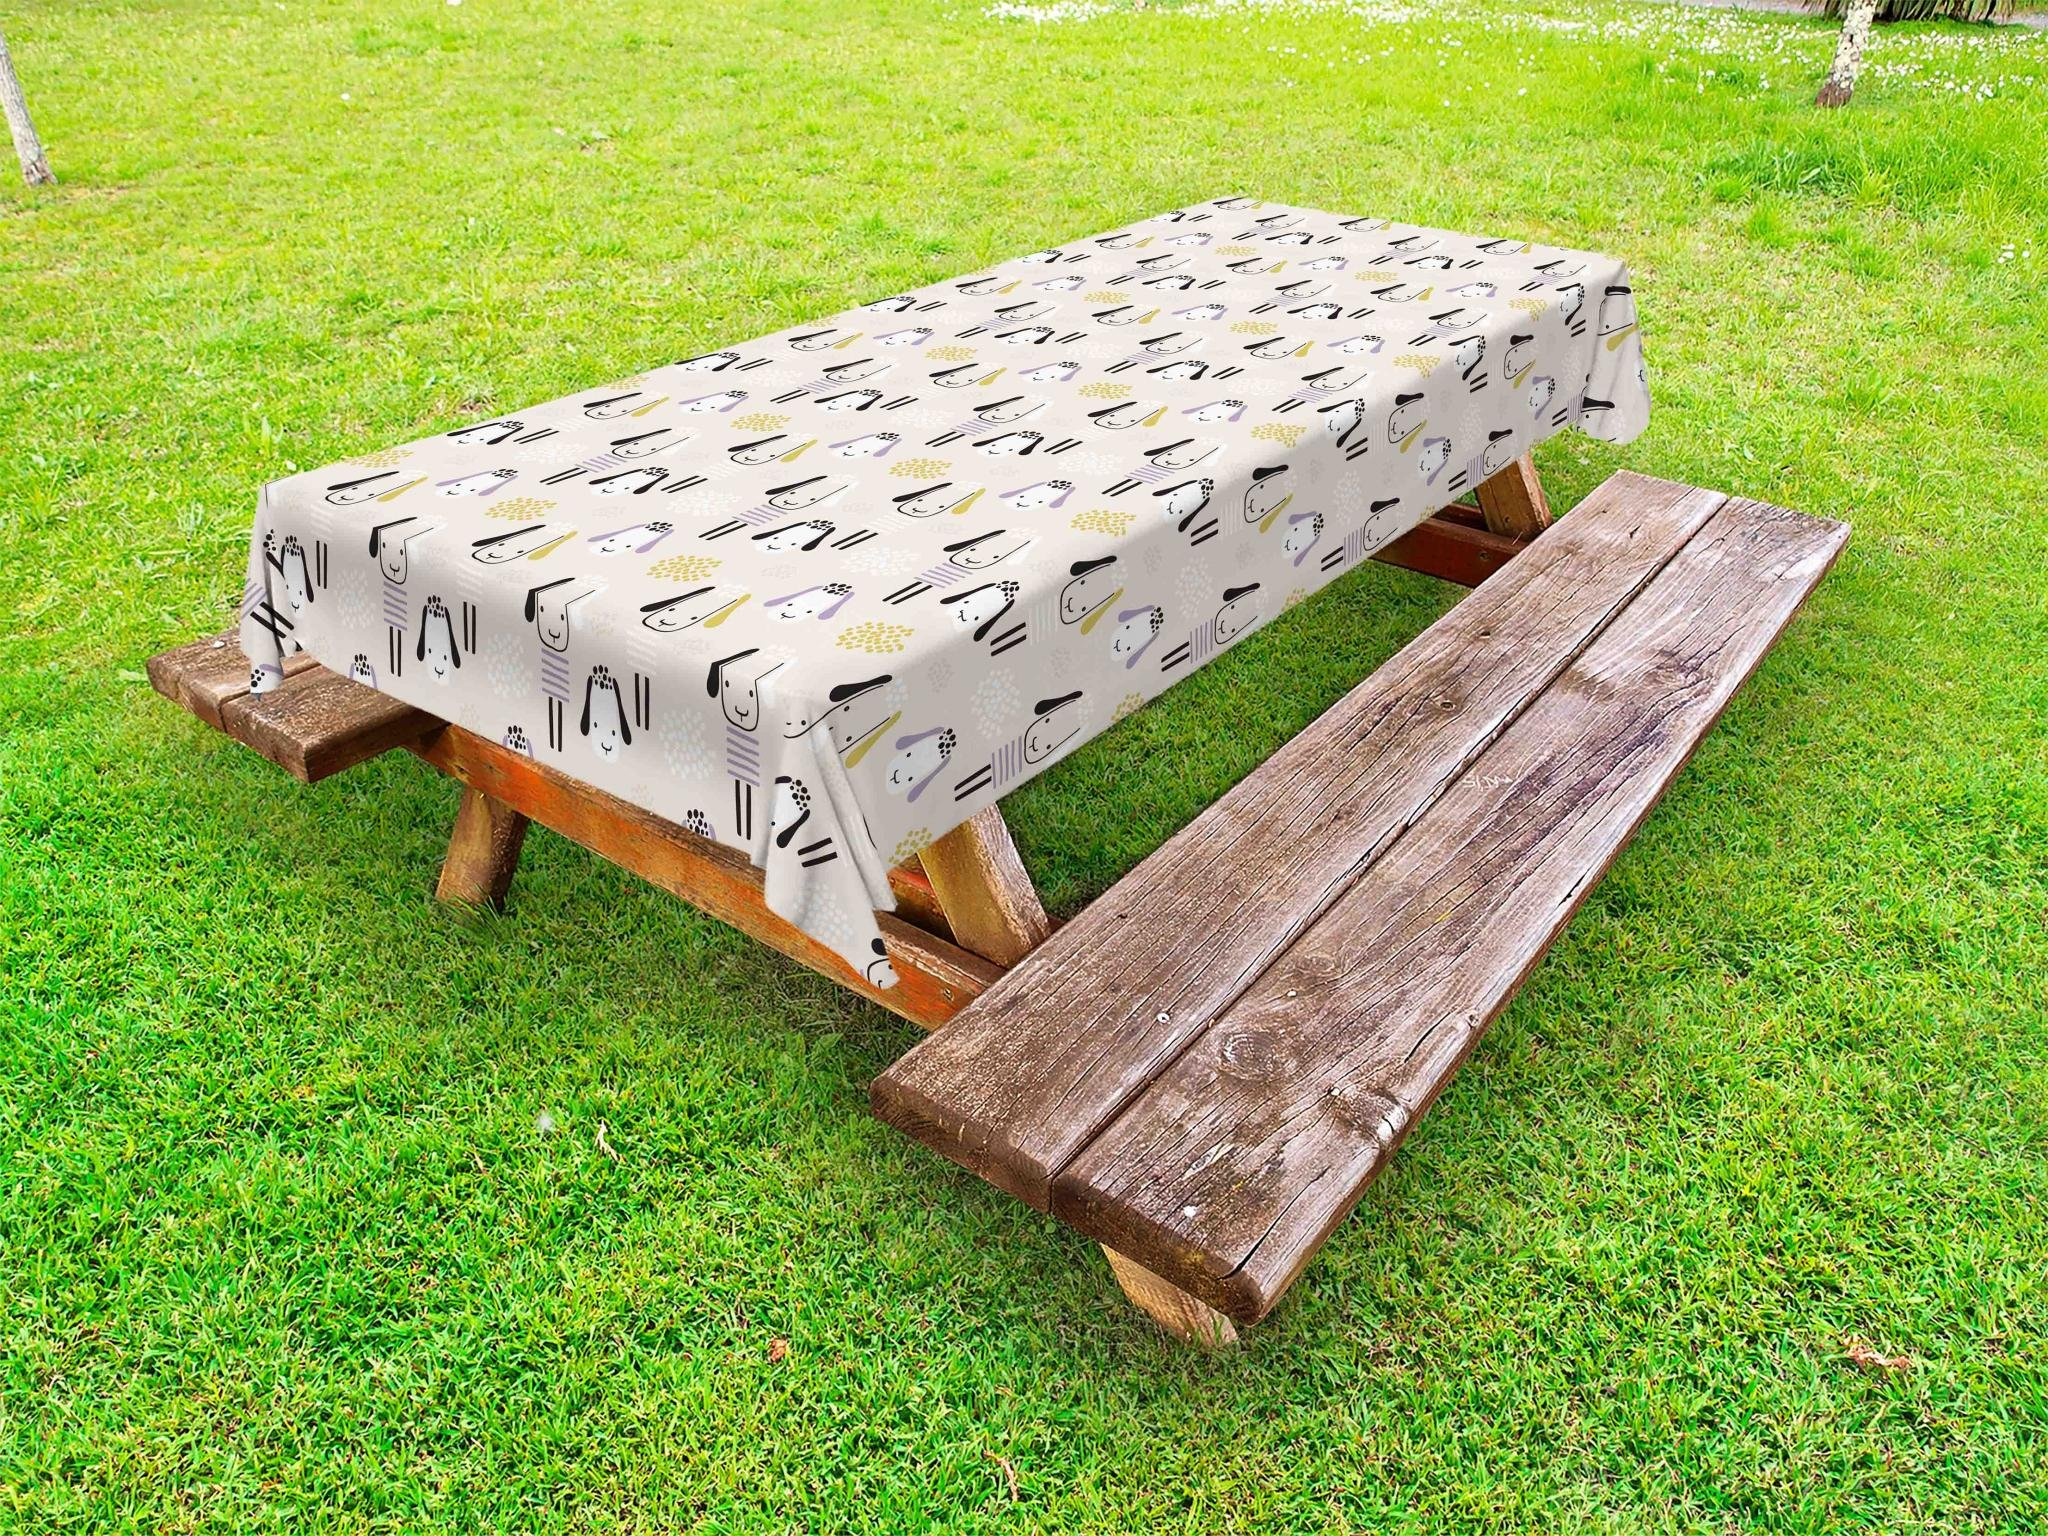 Lunarable Animal Outdoor Tablecloth, Abstract Sheep Pattern Creative Nursery Theme Doodle Farmhouse Herd, Decorative Washable Picnic Table Cloth, 58 X 120 inches, Earth Yellow Lavender Beige by Lunarable